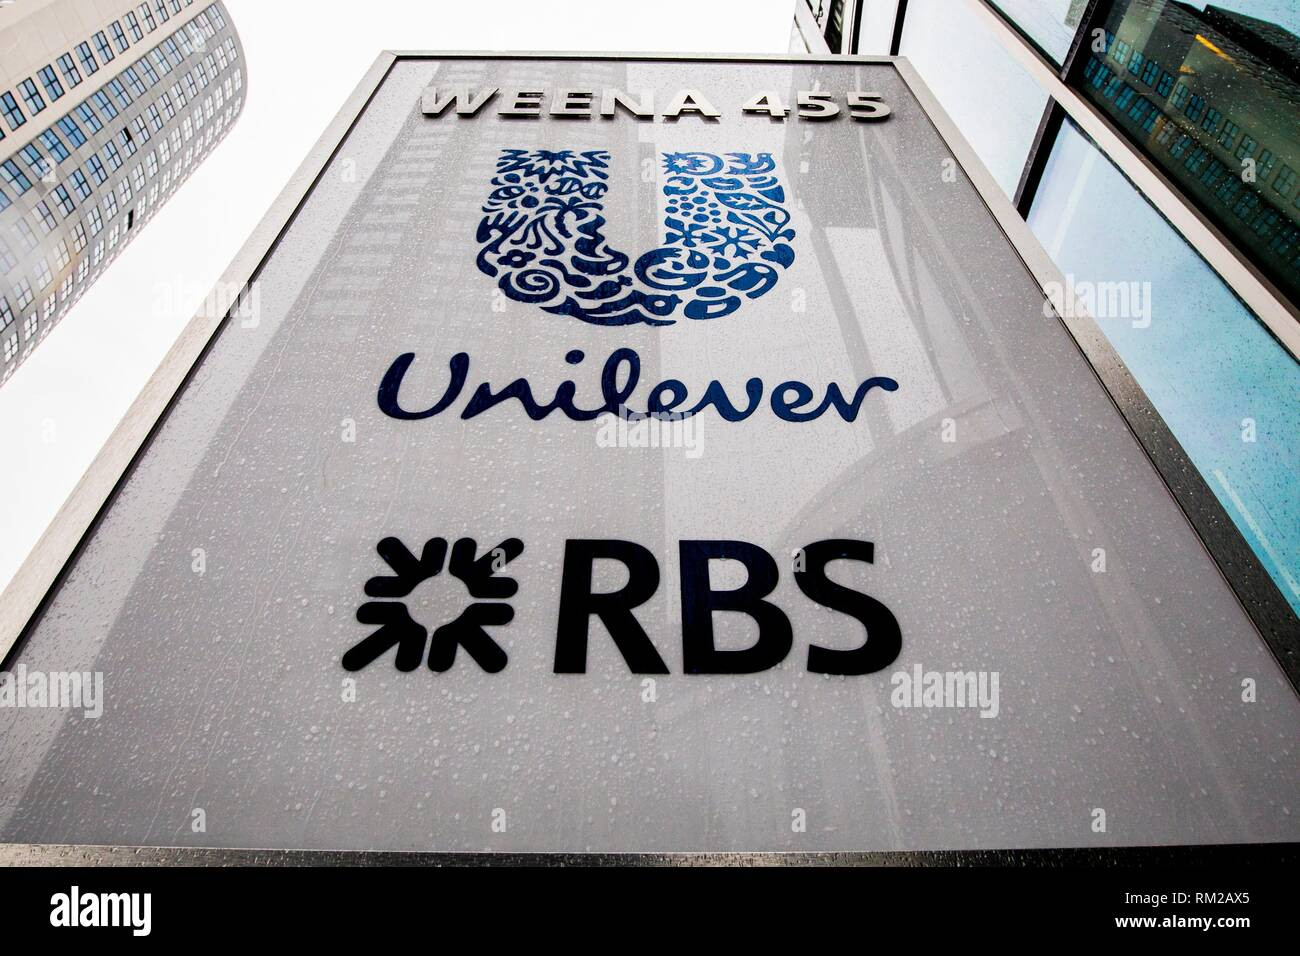 ROTTERDAM - Unilever's head office will be in Rotterdam, the company's board of directors announced on Thursday. - Stock Image